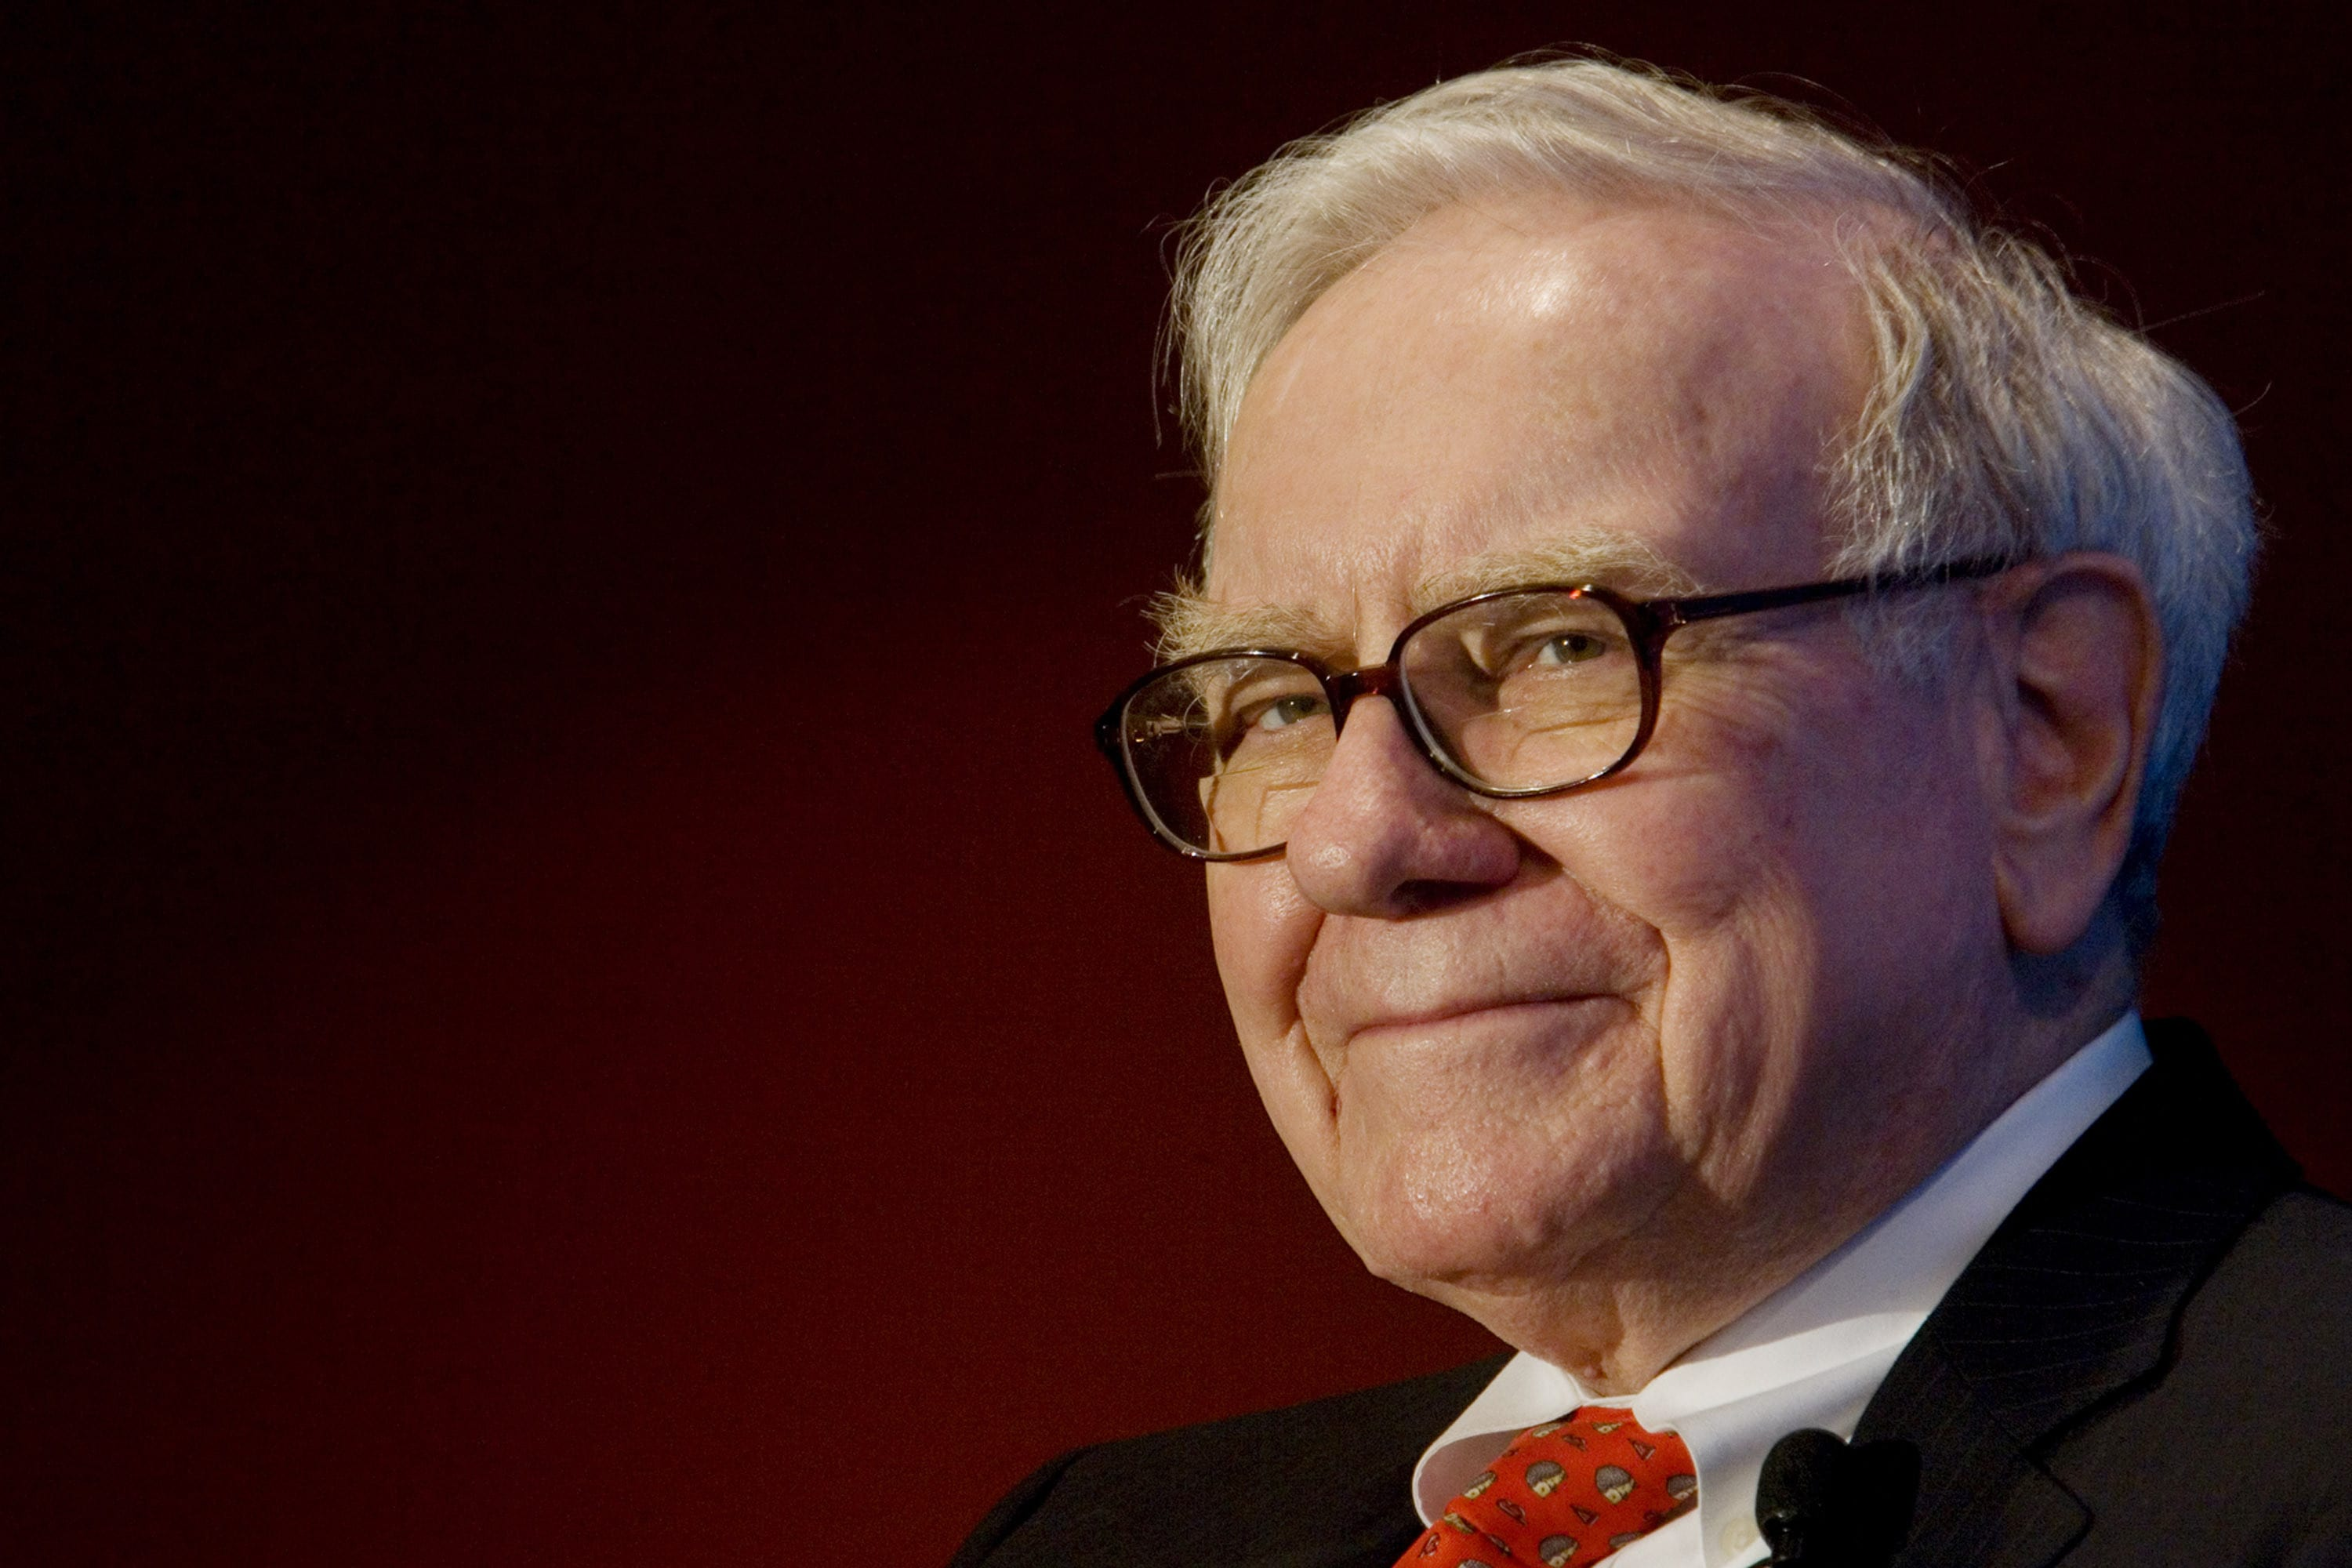 Warren Buffett is offering $1 billion to anyone who can correctly guess the NCAA men's basketball tournament